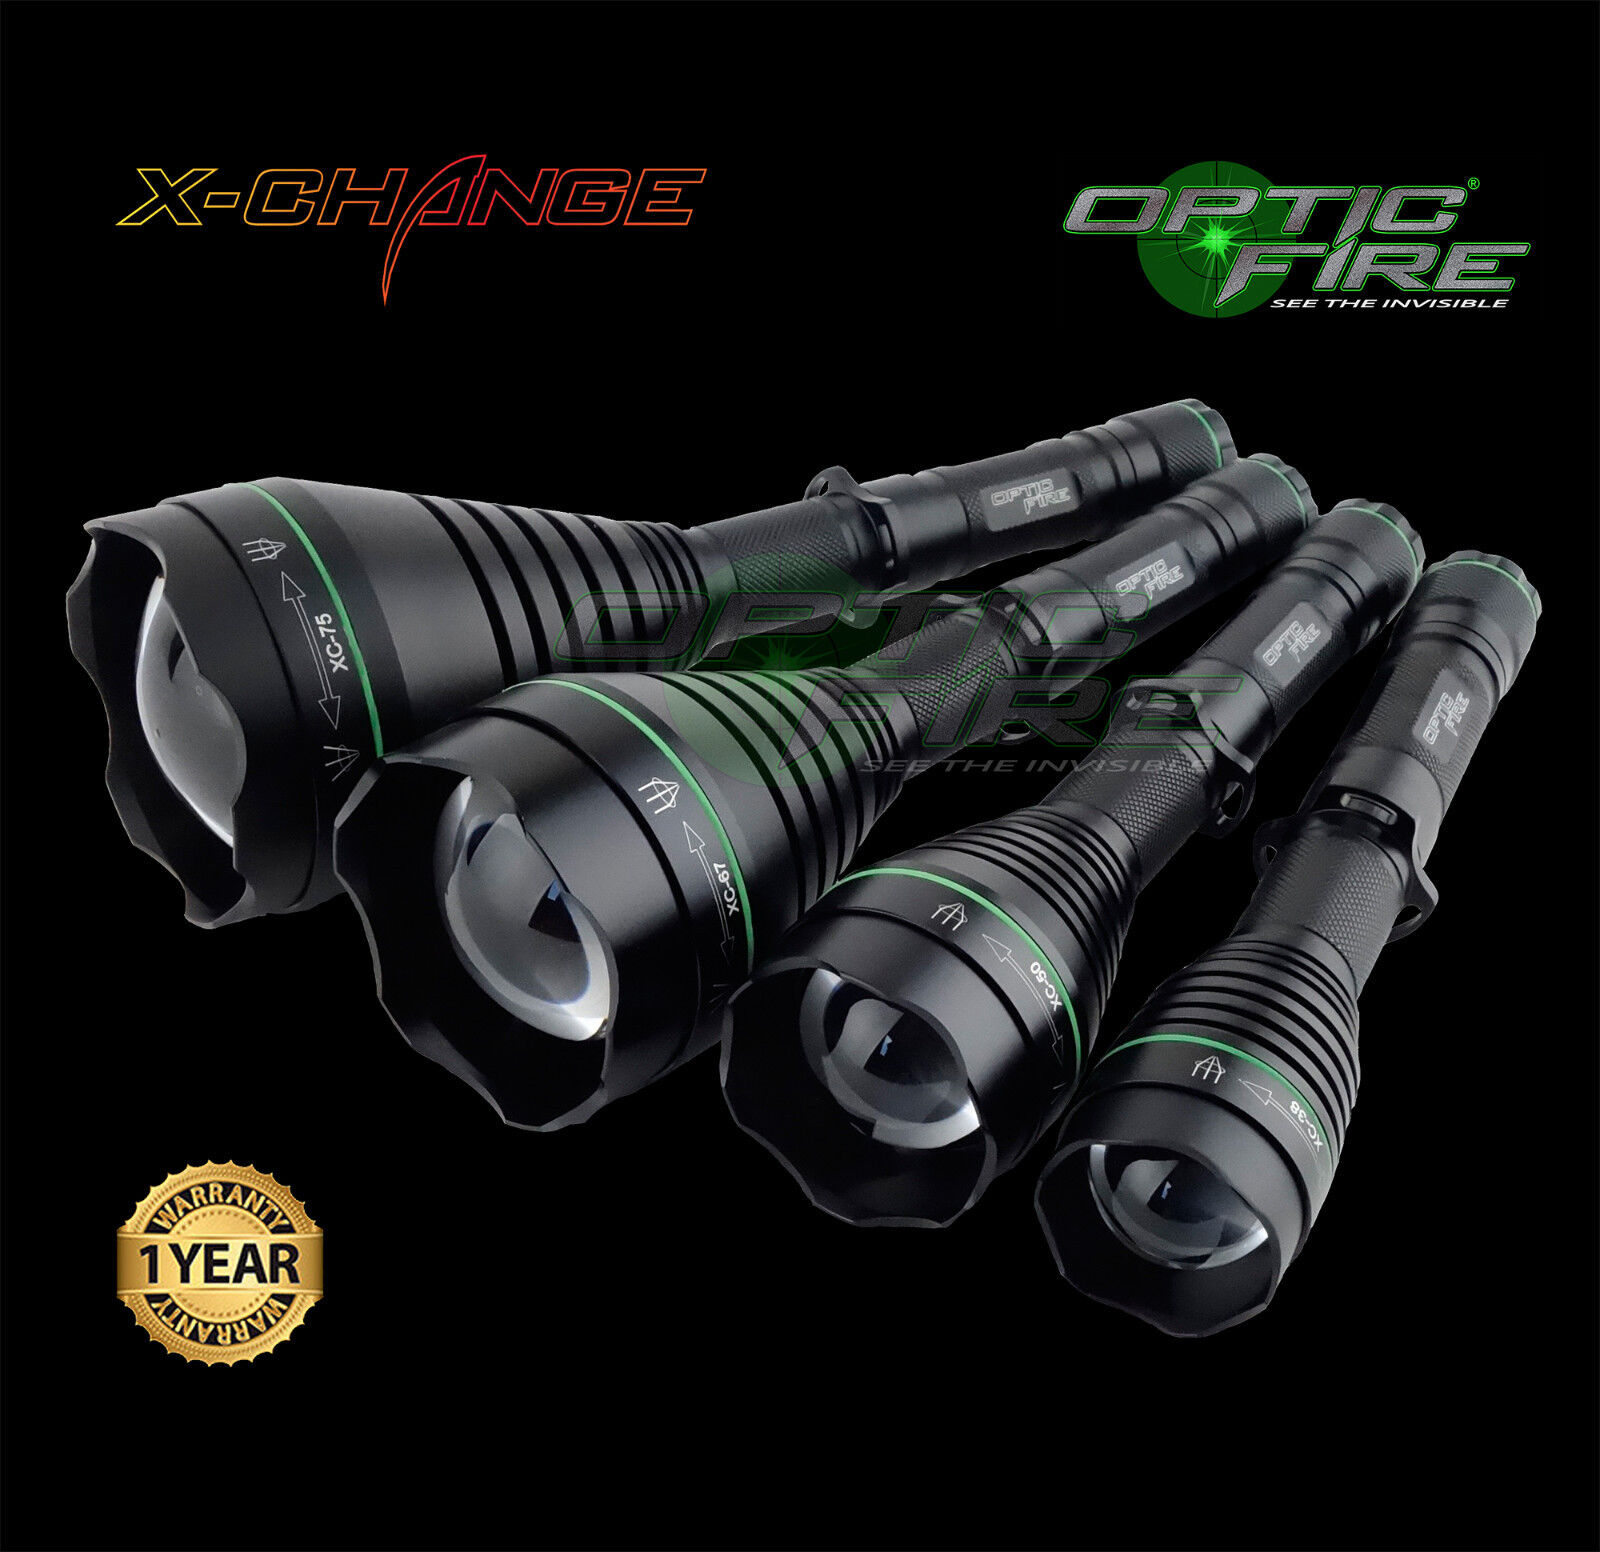 Opticfire® XC 3 LED Deluxe high power hunting torch lamping lamping lamping lamp gun light kit 776428